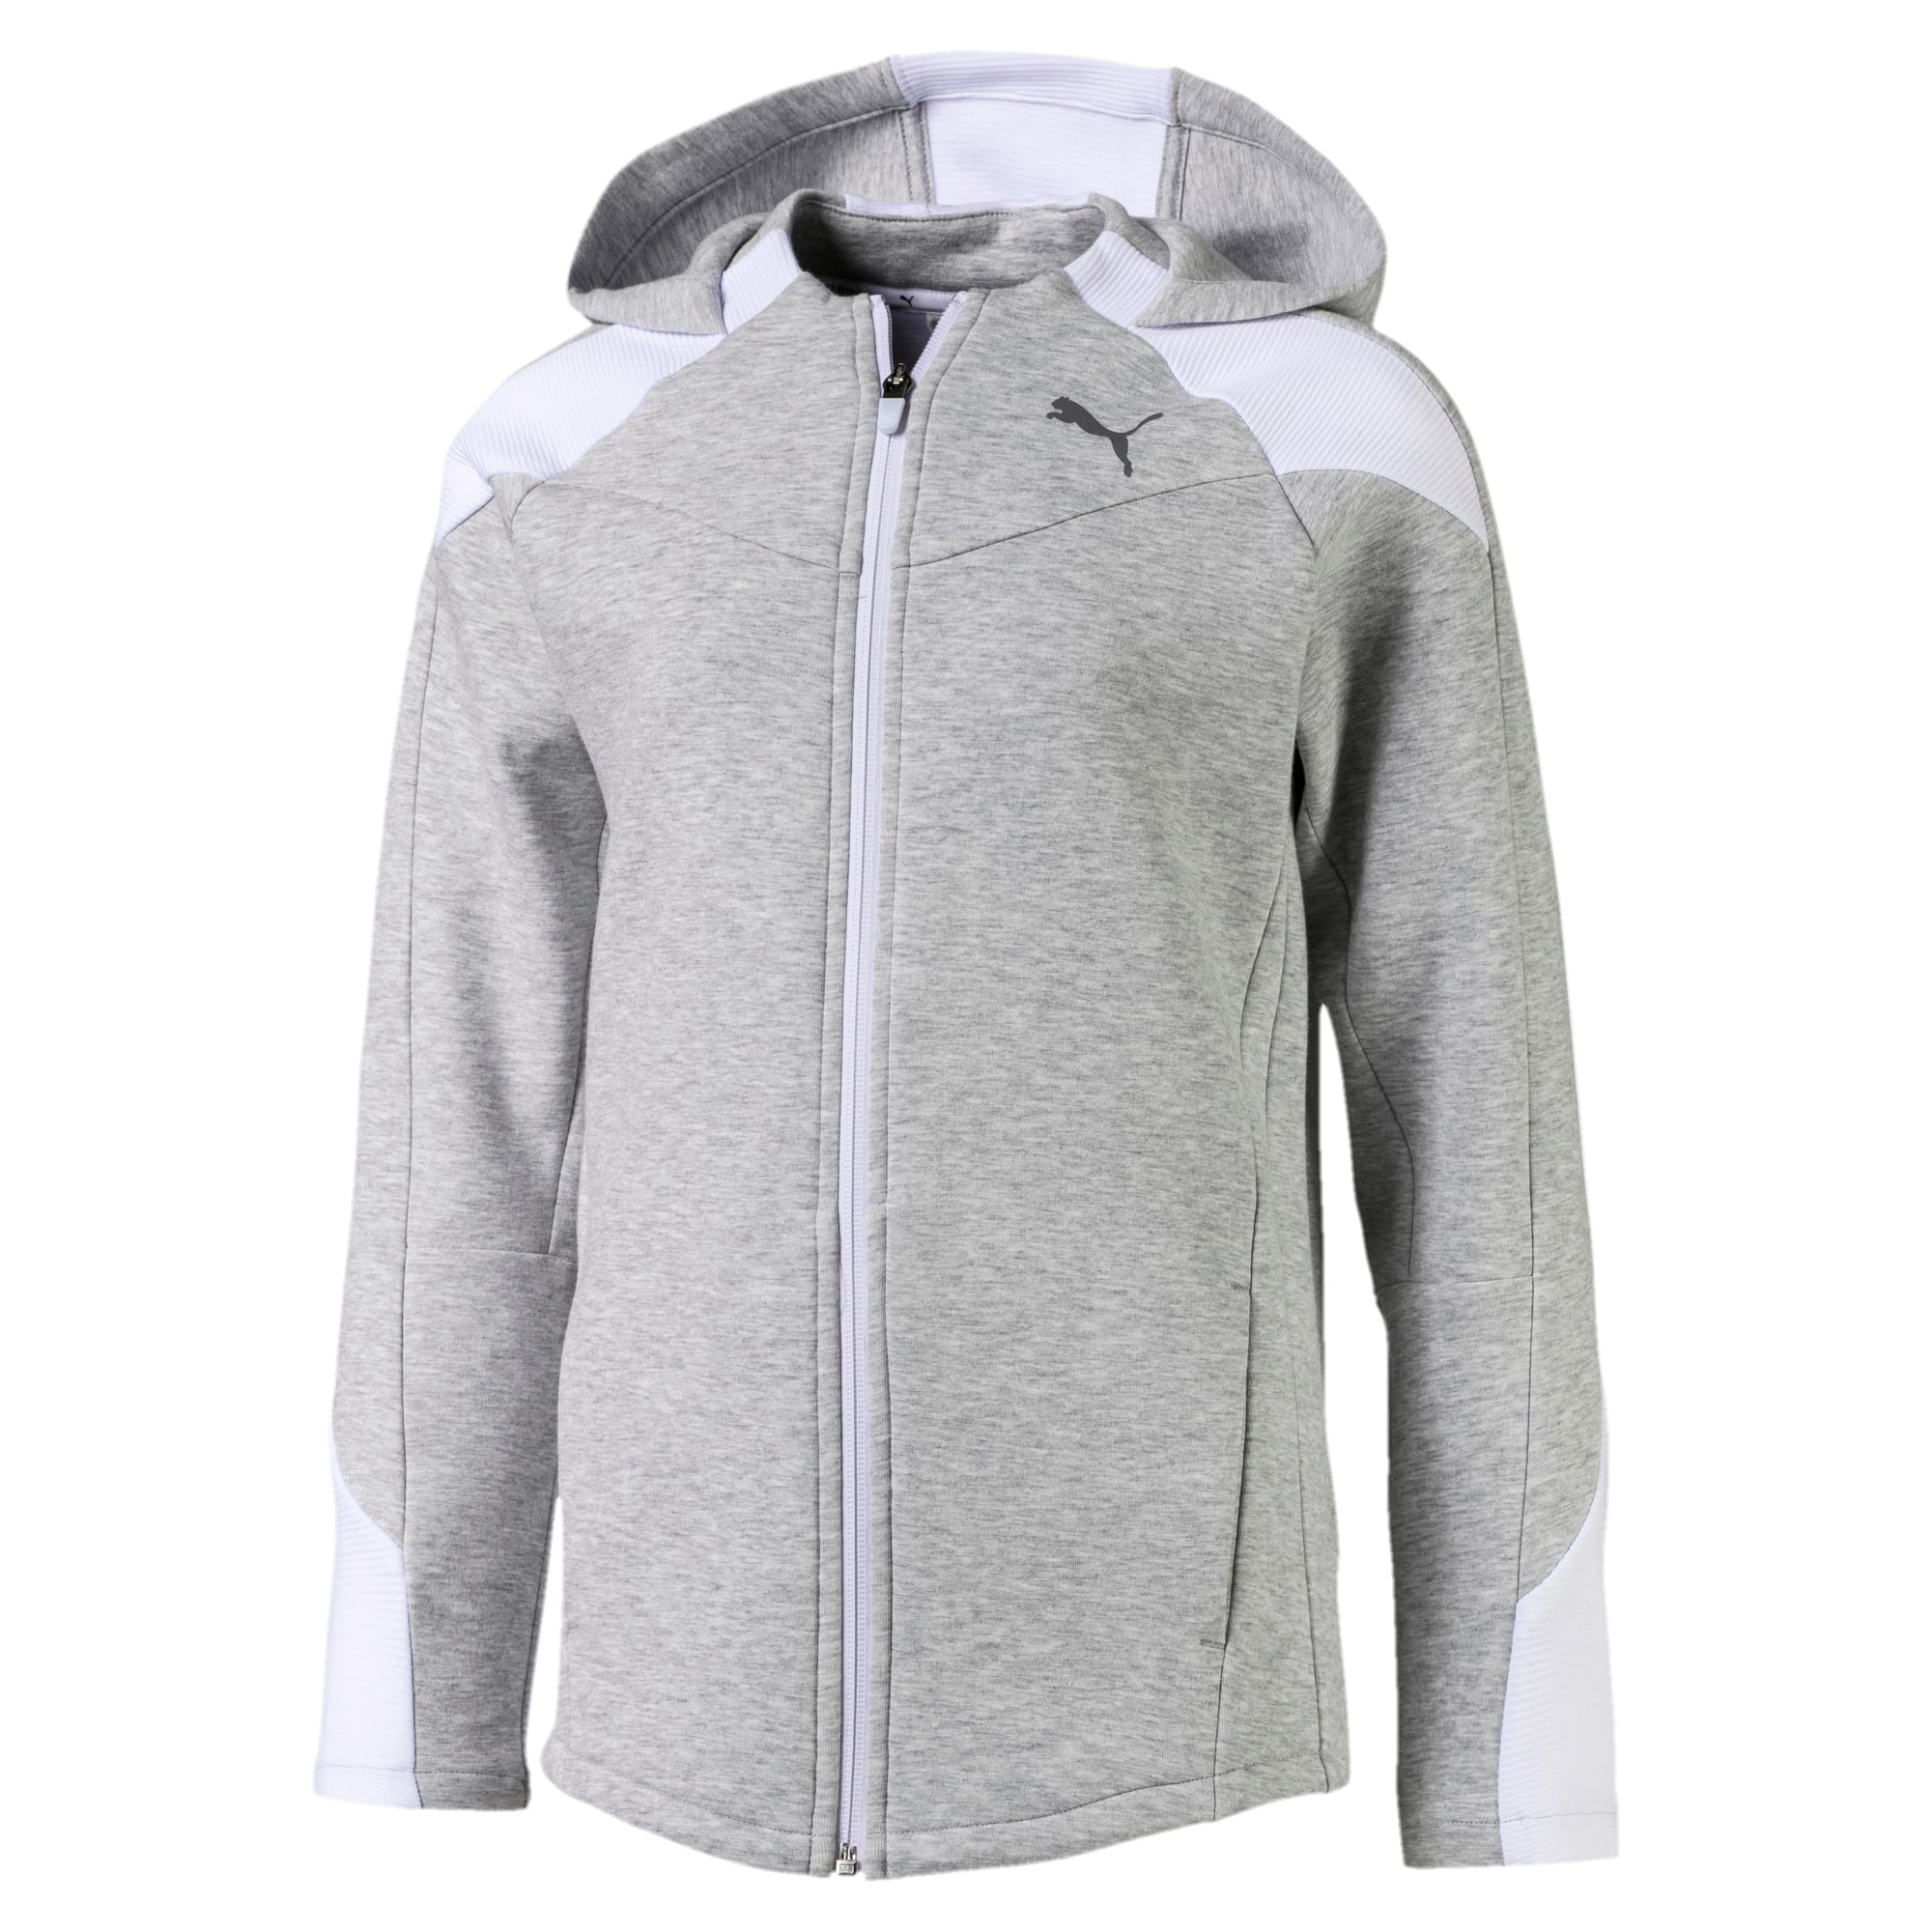 Thumbnail 1 of Evostripe Mädchen Sweatjacke mit Kapuze, Light Gray Heather, medium